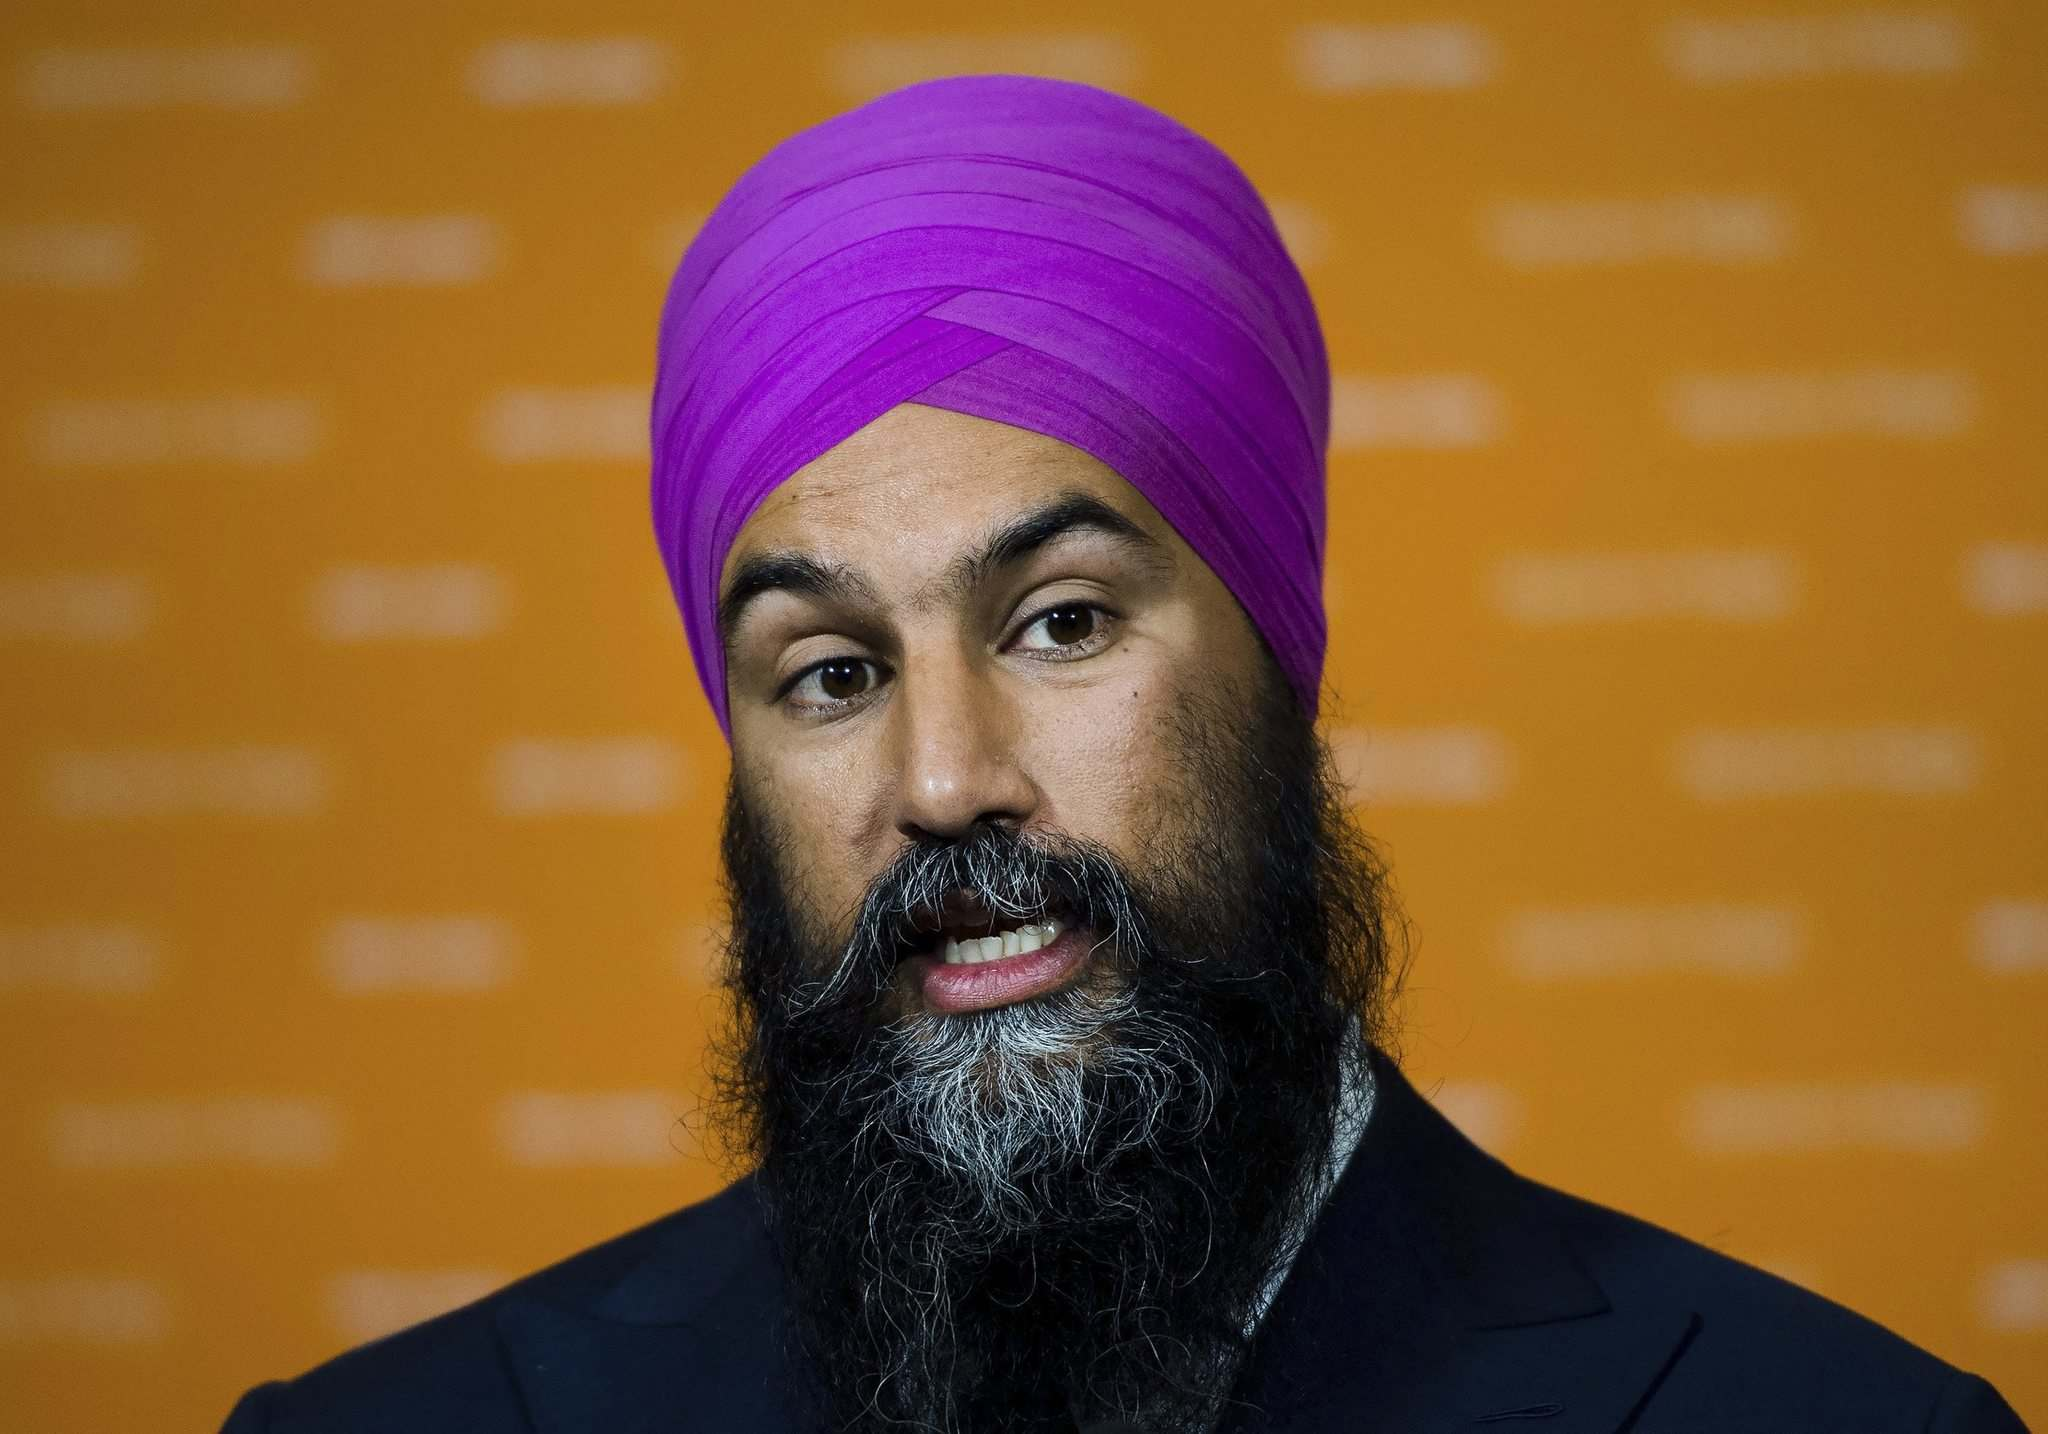 New Democratic Party Leader Jagmeet Singh said he would be open to forming a coalition government with the Liberals. (Nathan Denette / The Canadian Press files)